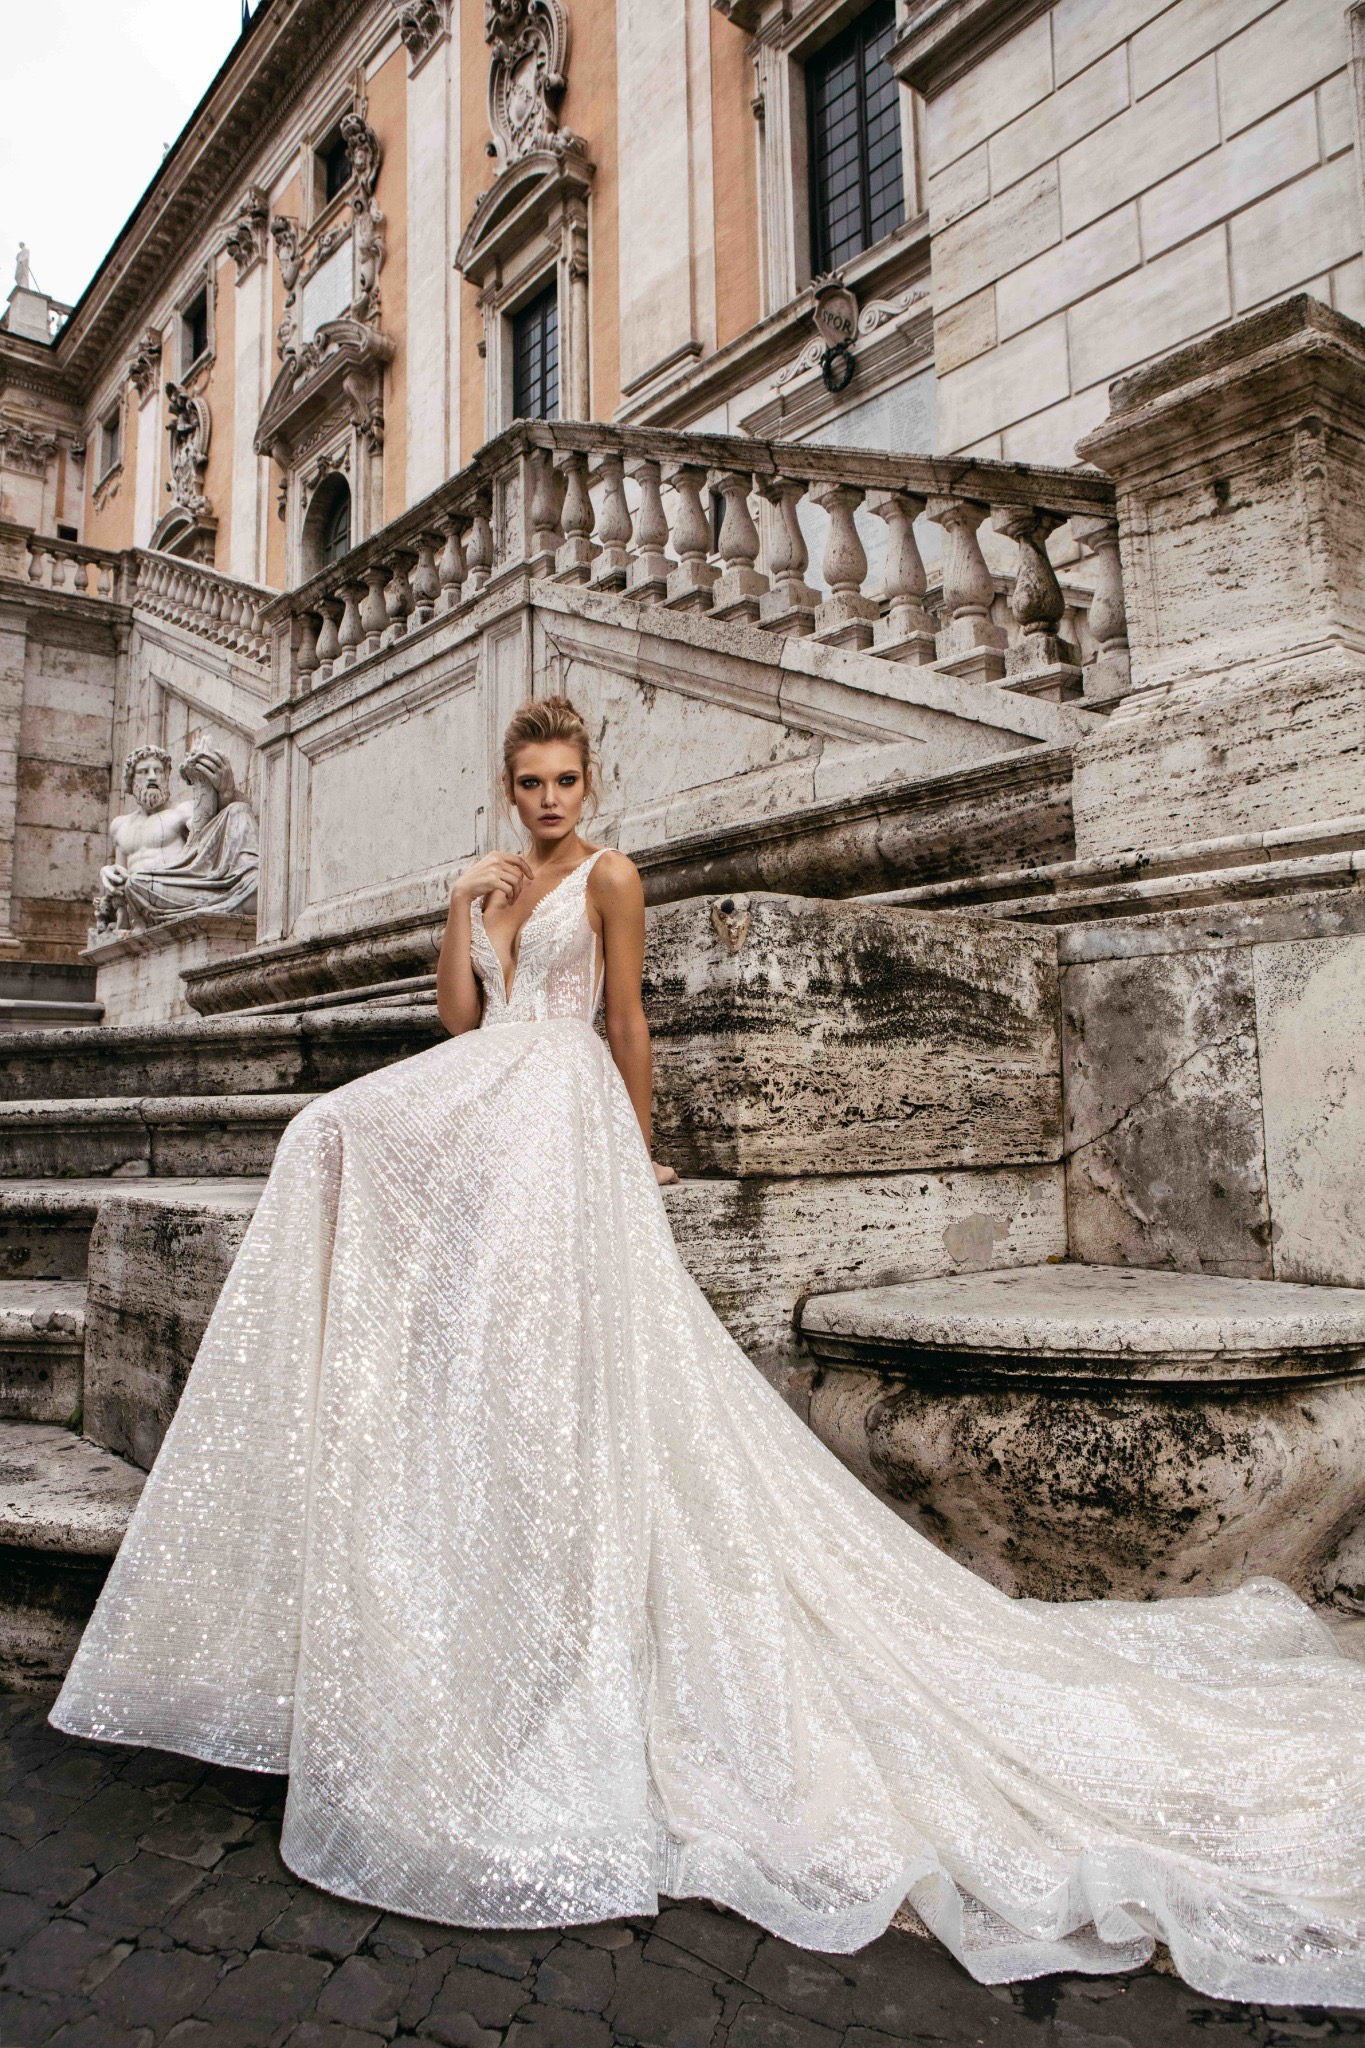 Innocentia Wedding Gowns - The Blushing Bride boutique in Frisco, Texas